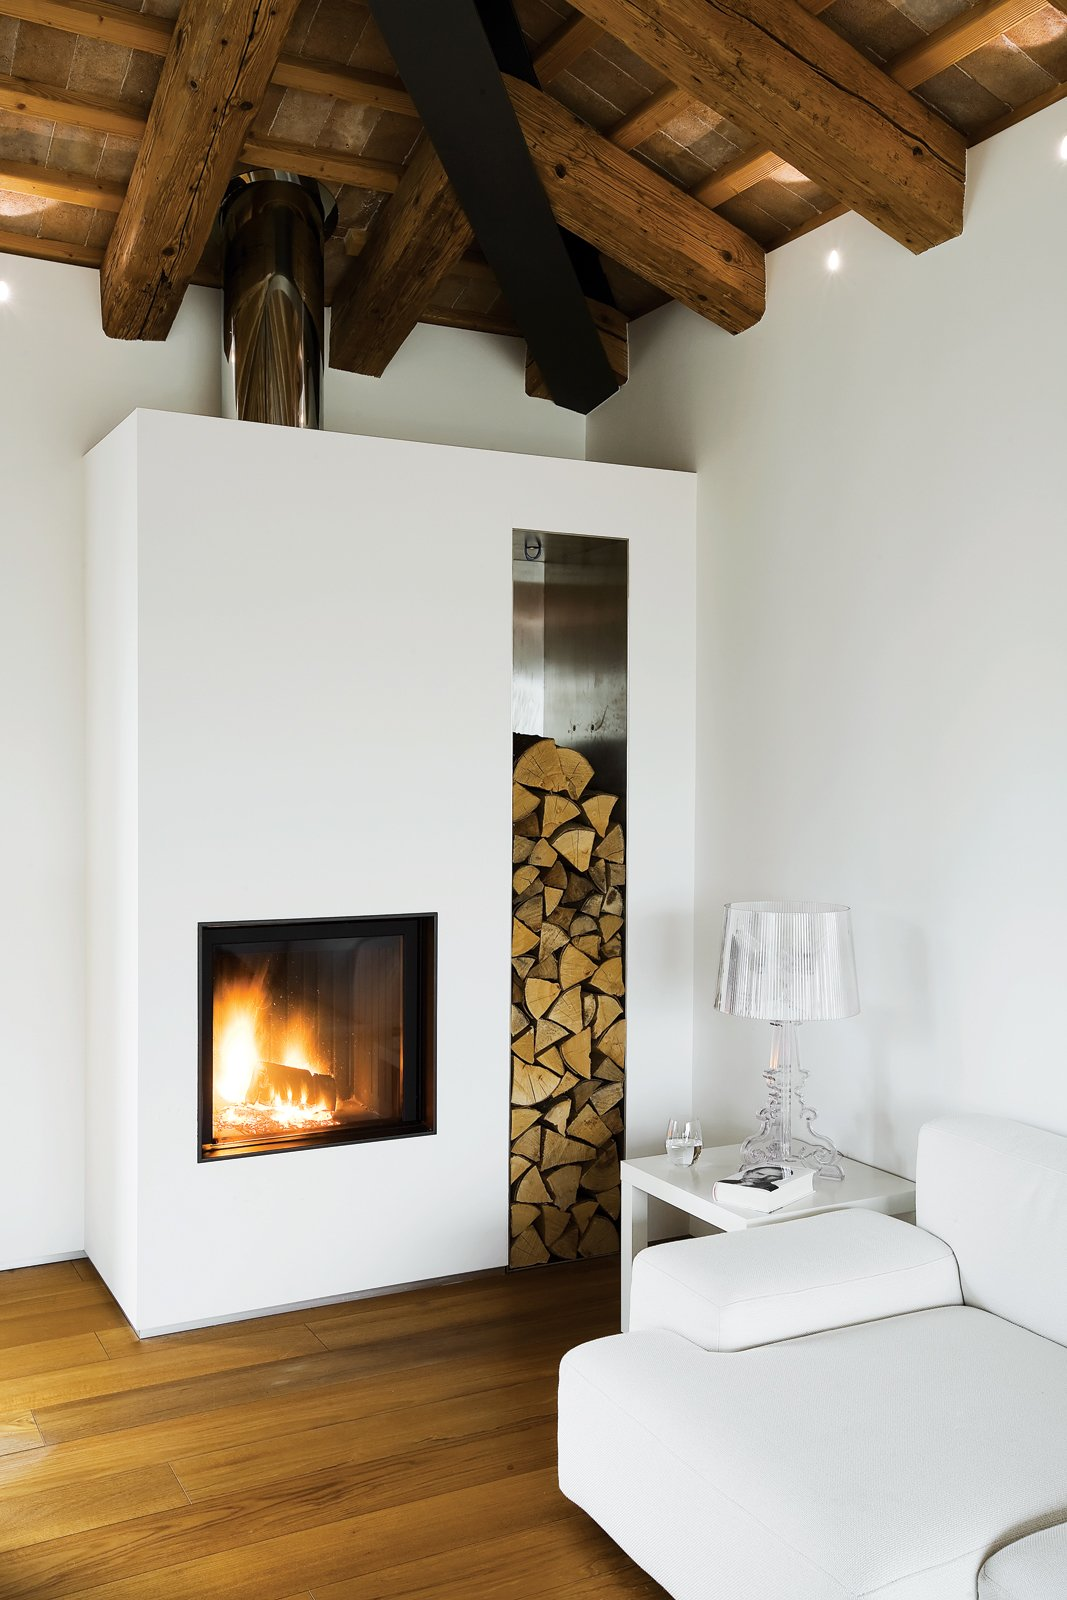 Living Room, Medium Hardwood Floor, End Tables, Sofa, Table Lighting, and Wood Burning Fireplace A firewood nice and hearth infuse the interior of a renovated farmhouse in Italy with coziness. Photo by Helenio Barbetta.  Photo 4 of 10 in 10 Cozy Spaces and 15 Products to Help You Get Ready For Fall